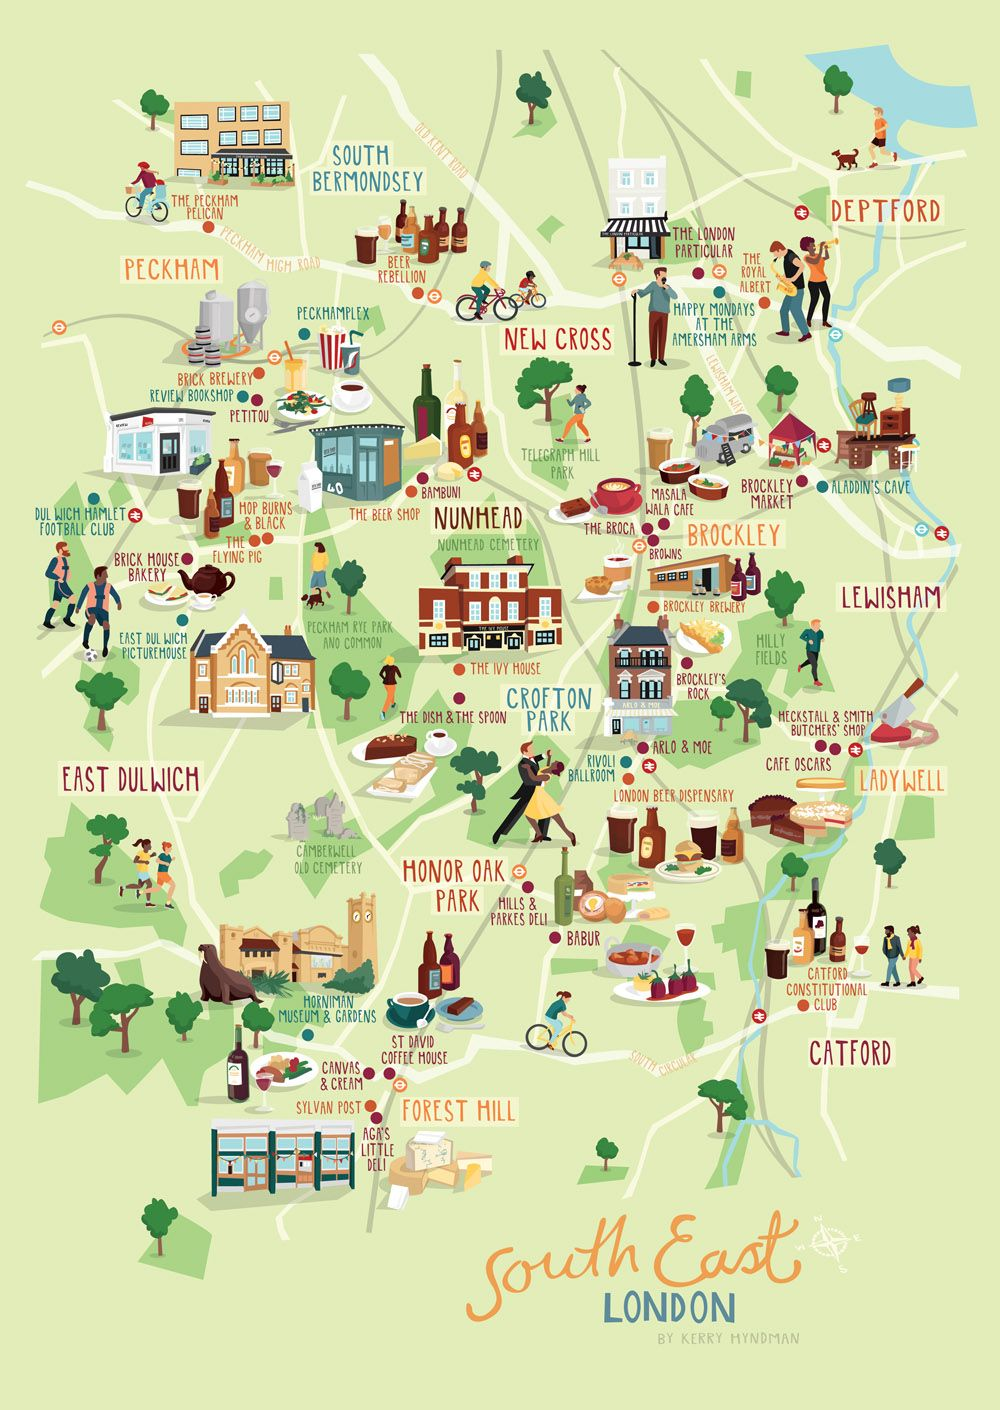 Map Of South East London Uk.Kerry Hyndman Co Uk I Ve Just Finished A New Illustrated Map